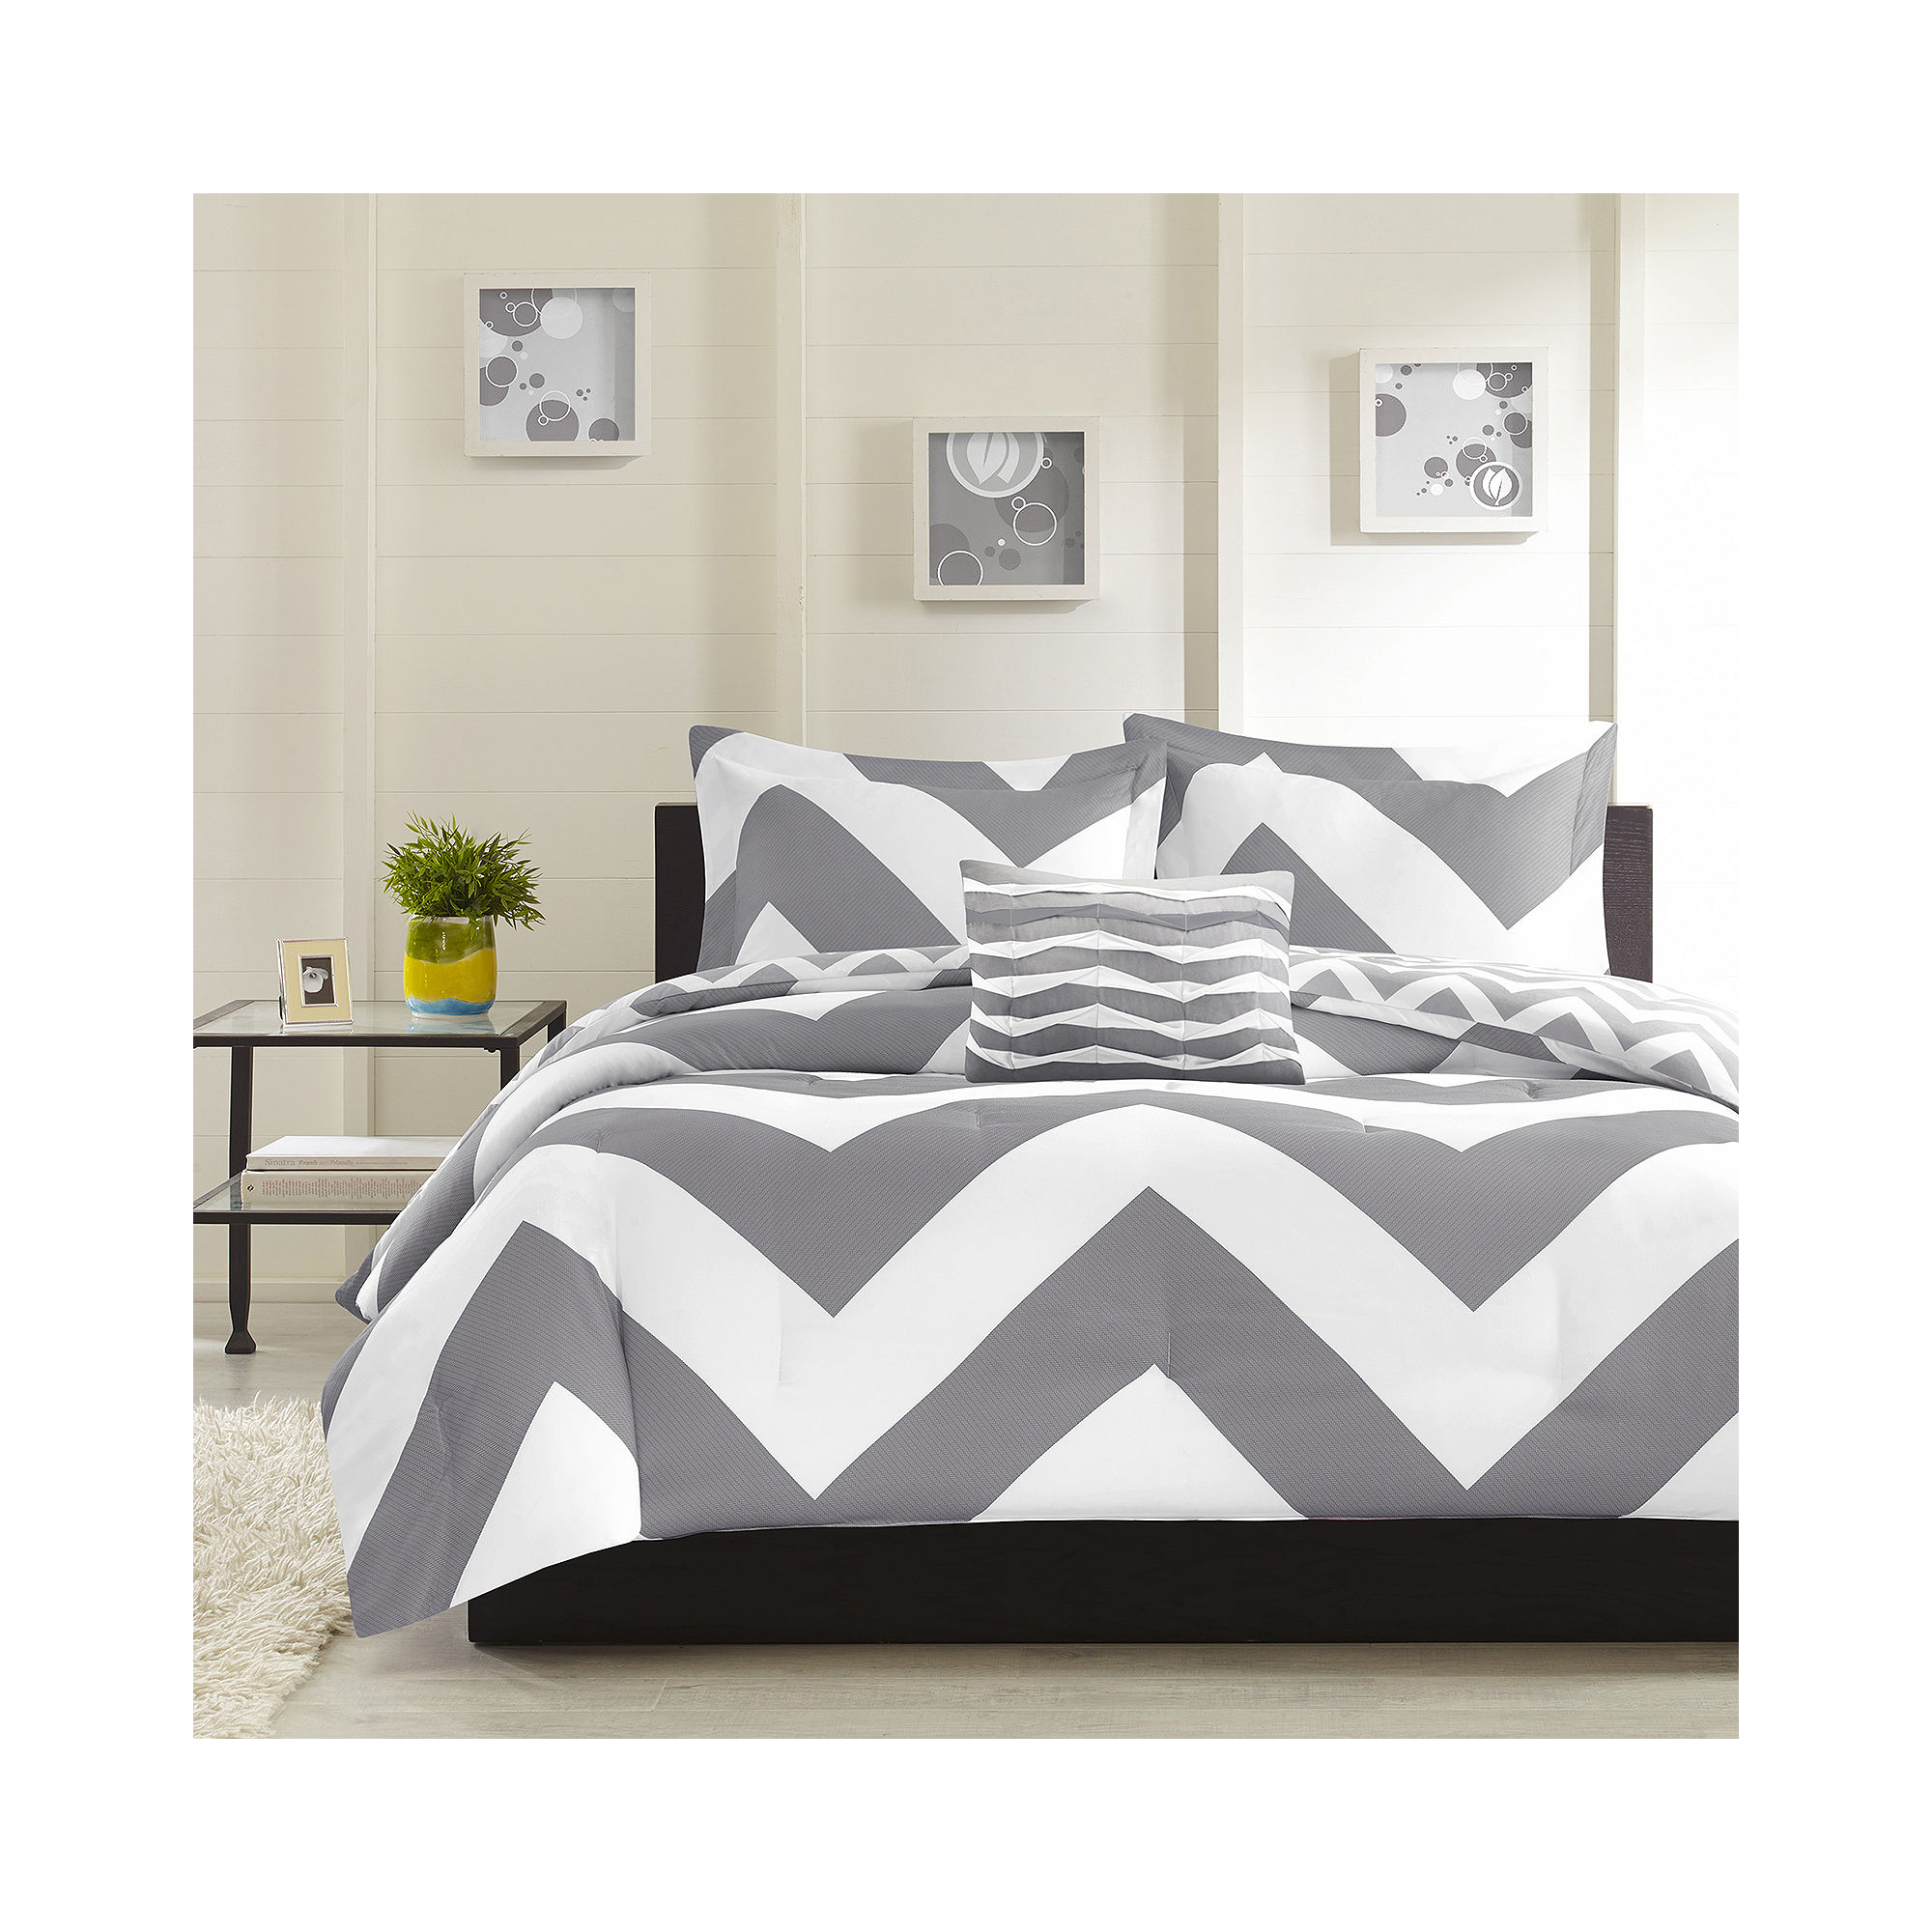 Jcpenneys Home Store: CHEAP JCPenney Home Belcourt 4-pc. Comforter Set NOW